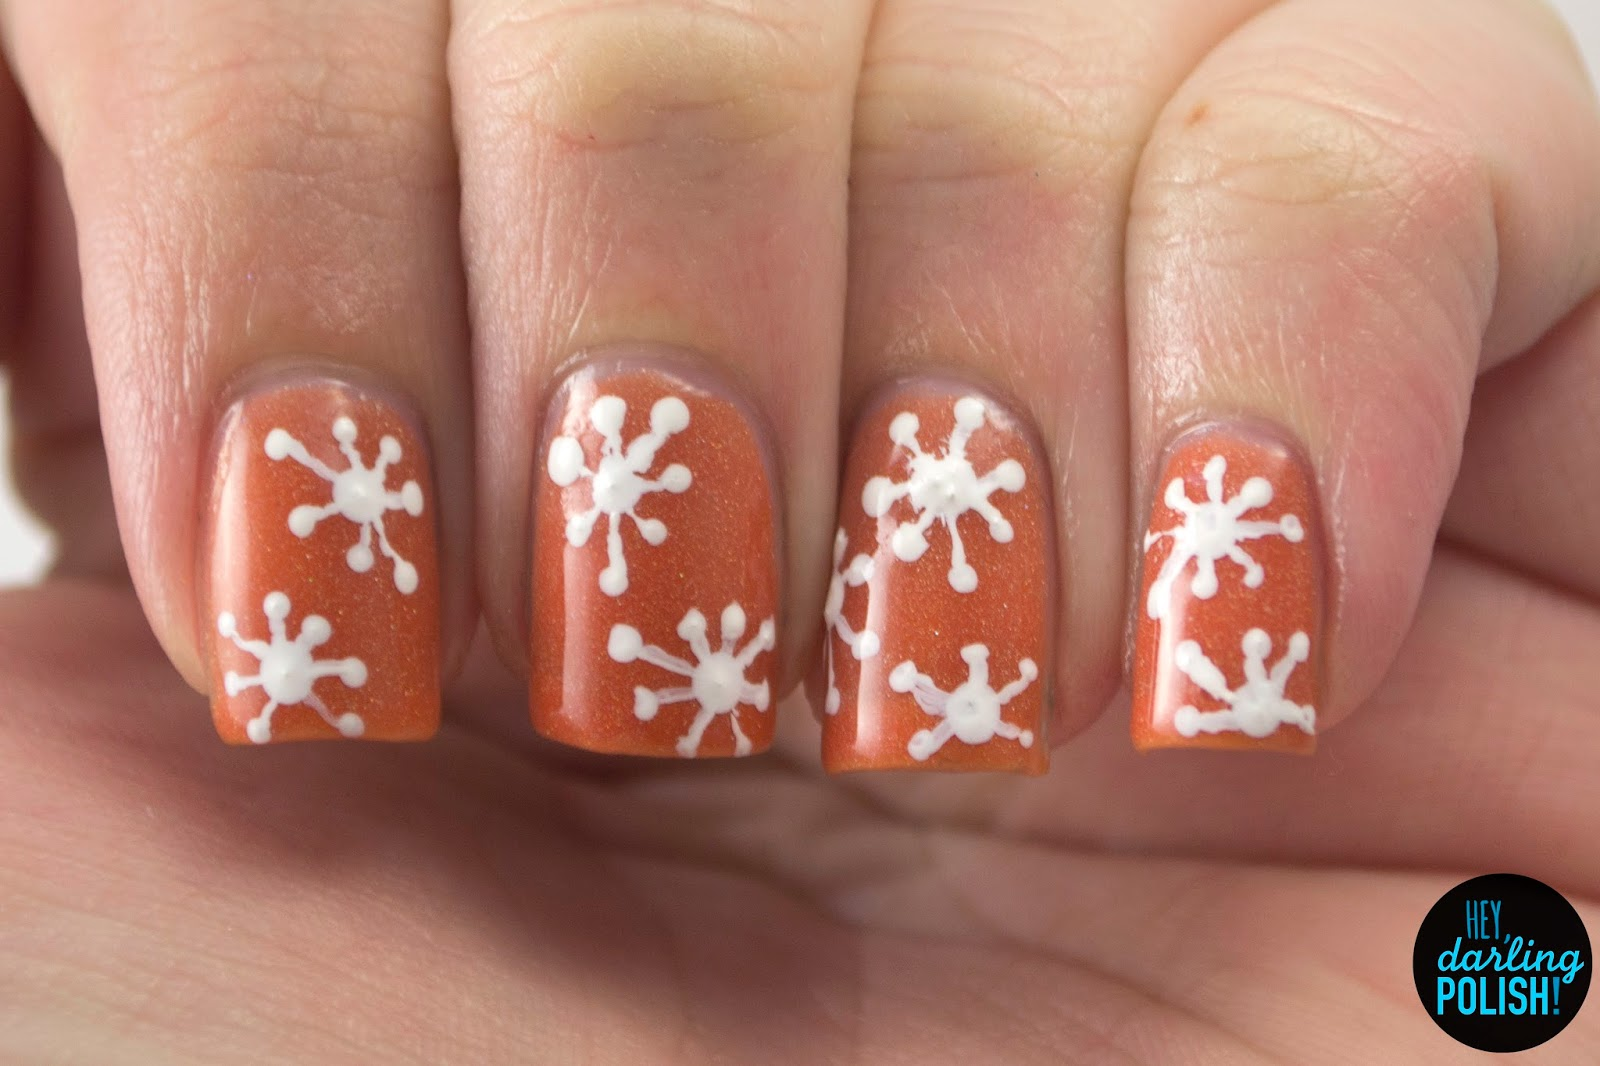 indie, indie polish, indie nail polish, nails, nail art, nail polish, polish, holo, hey darling polish, orange, white, snowflakes, the never ending pile challenge, lucky 13 lacquer